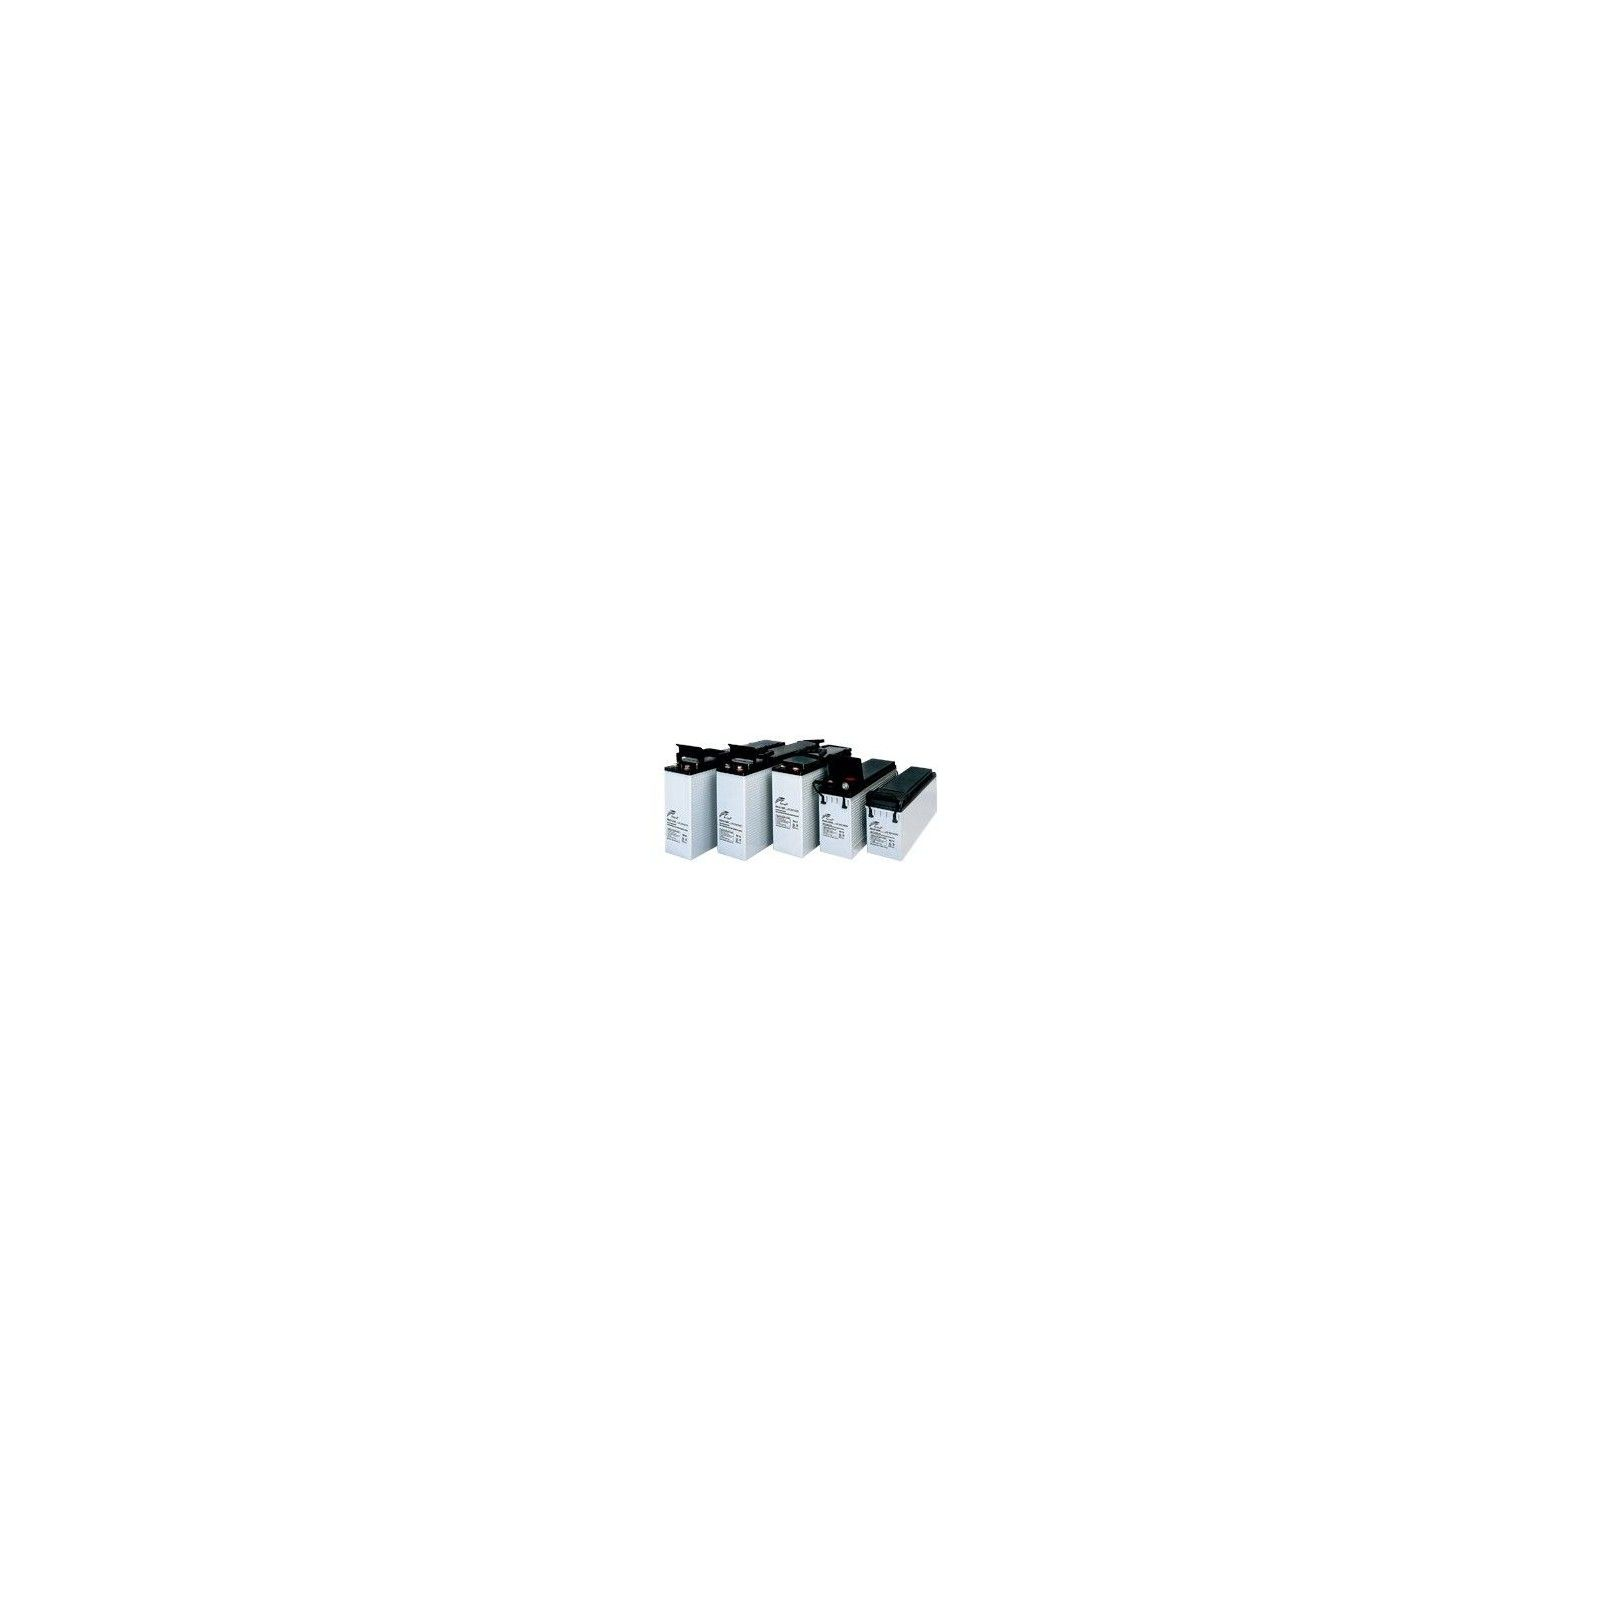 BATTERY RITAR RT12280 12V 28AH  - 1